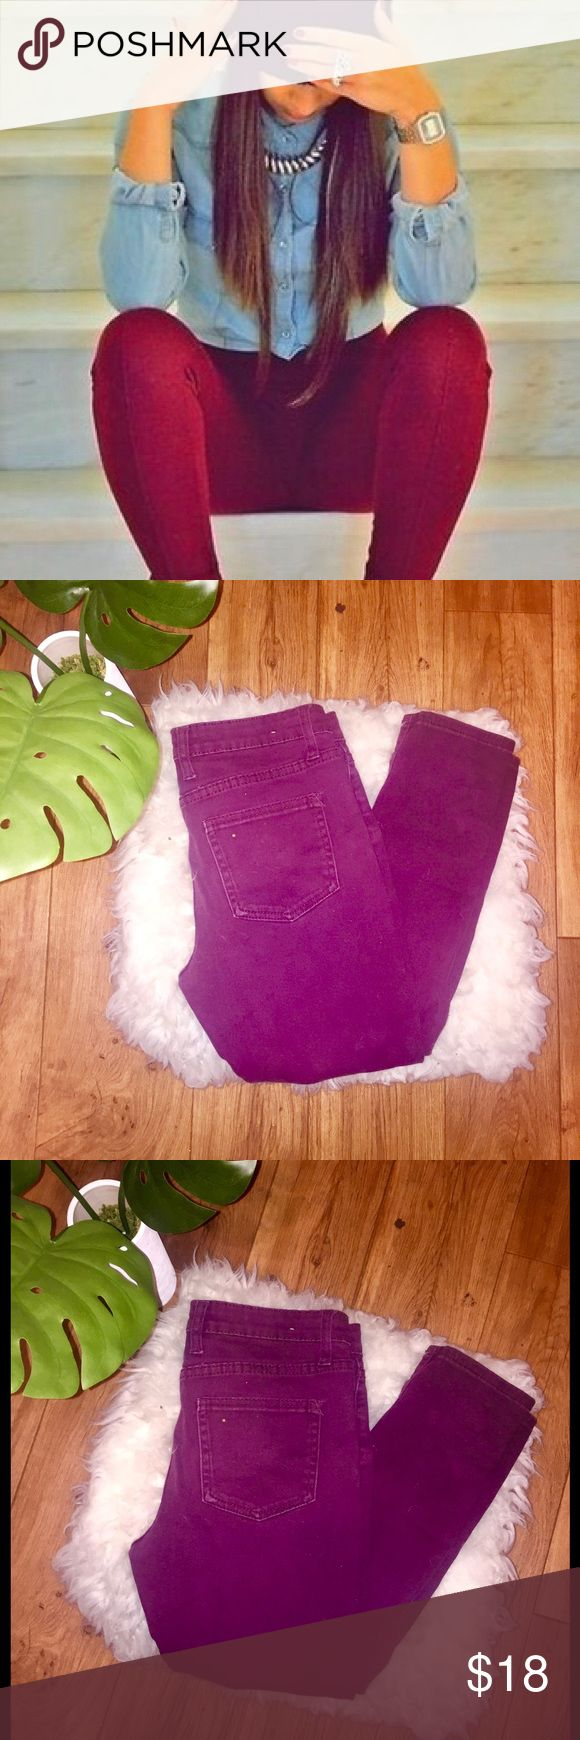 🎱 Burgundy Skinny Jeans 🎱🎱Burgundy- Maroon Skinny Jeans  - size 6  - Good Condition  - purchased from PACSUN < Coulor brand  - hugged tight fit PacSun Pants Skinny